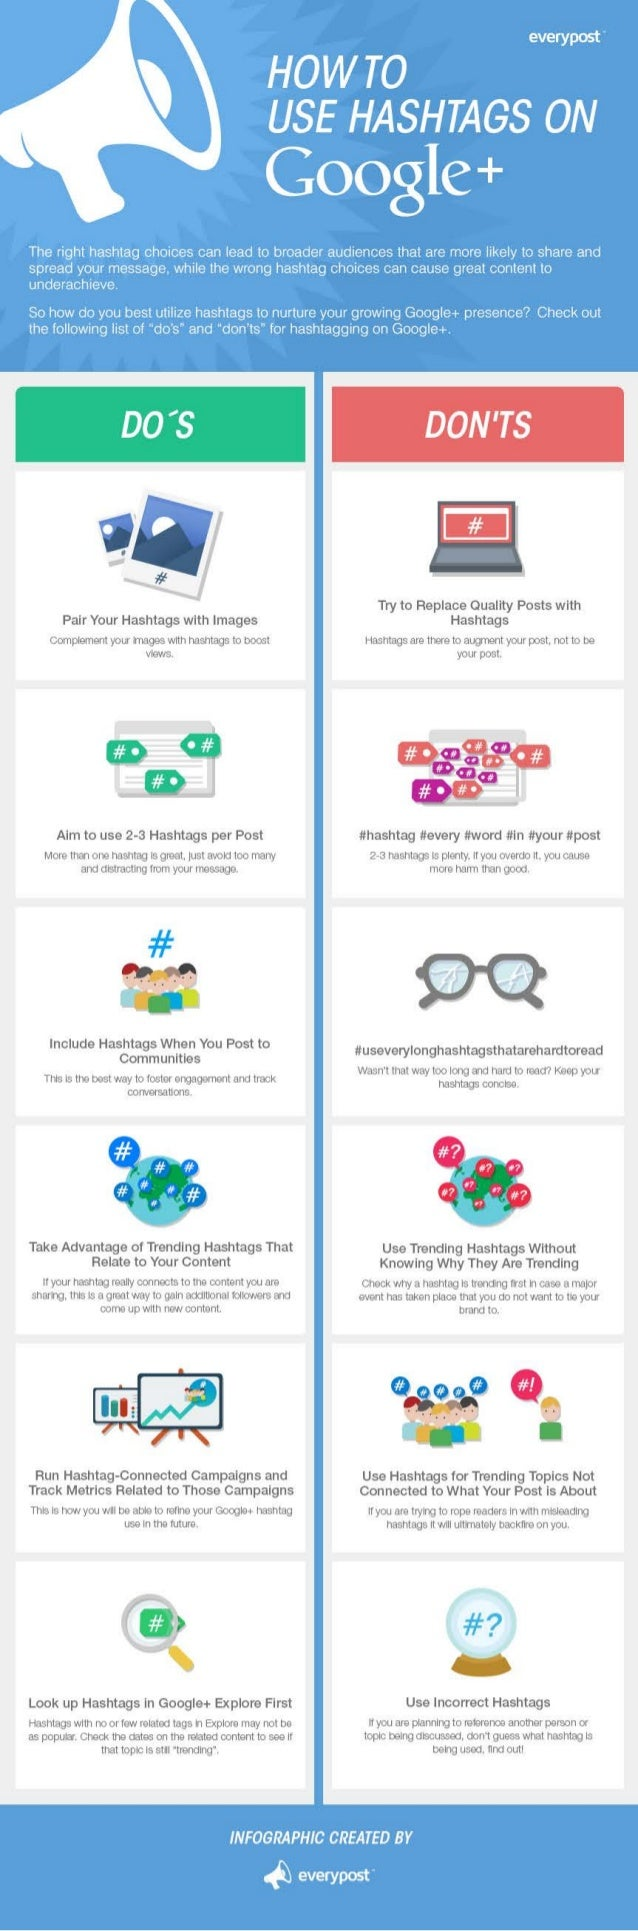 Pair Your Hashtags with images  Complement your images with nashtags to boost views.   59% ED  Aim to use 2-3 Hashtags per...